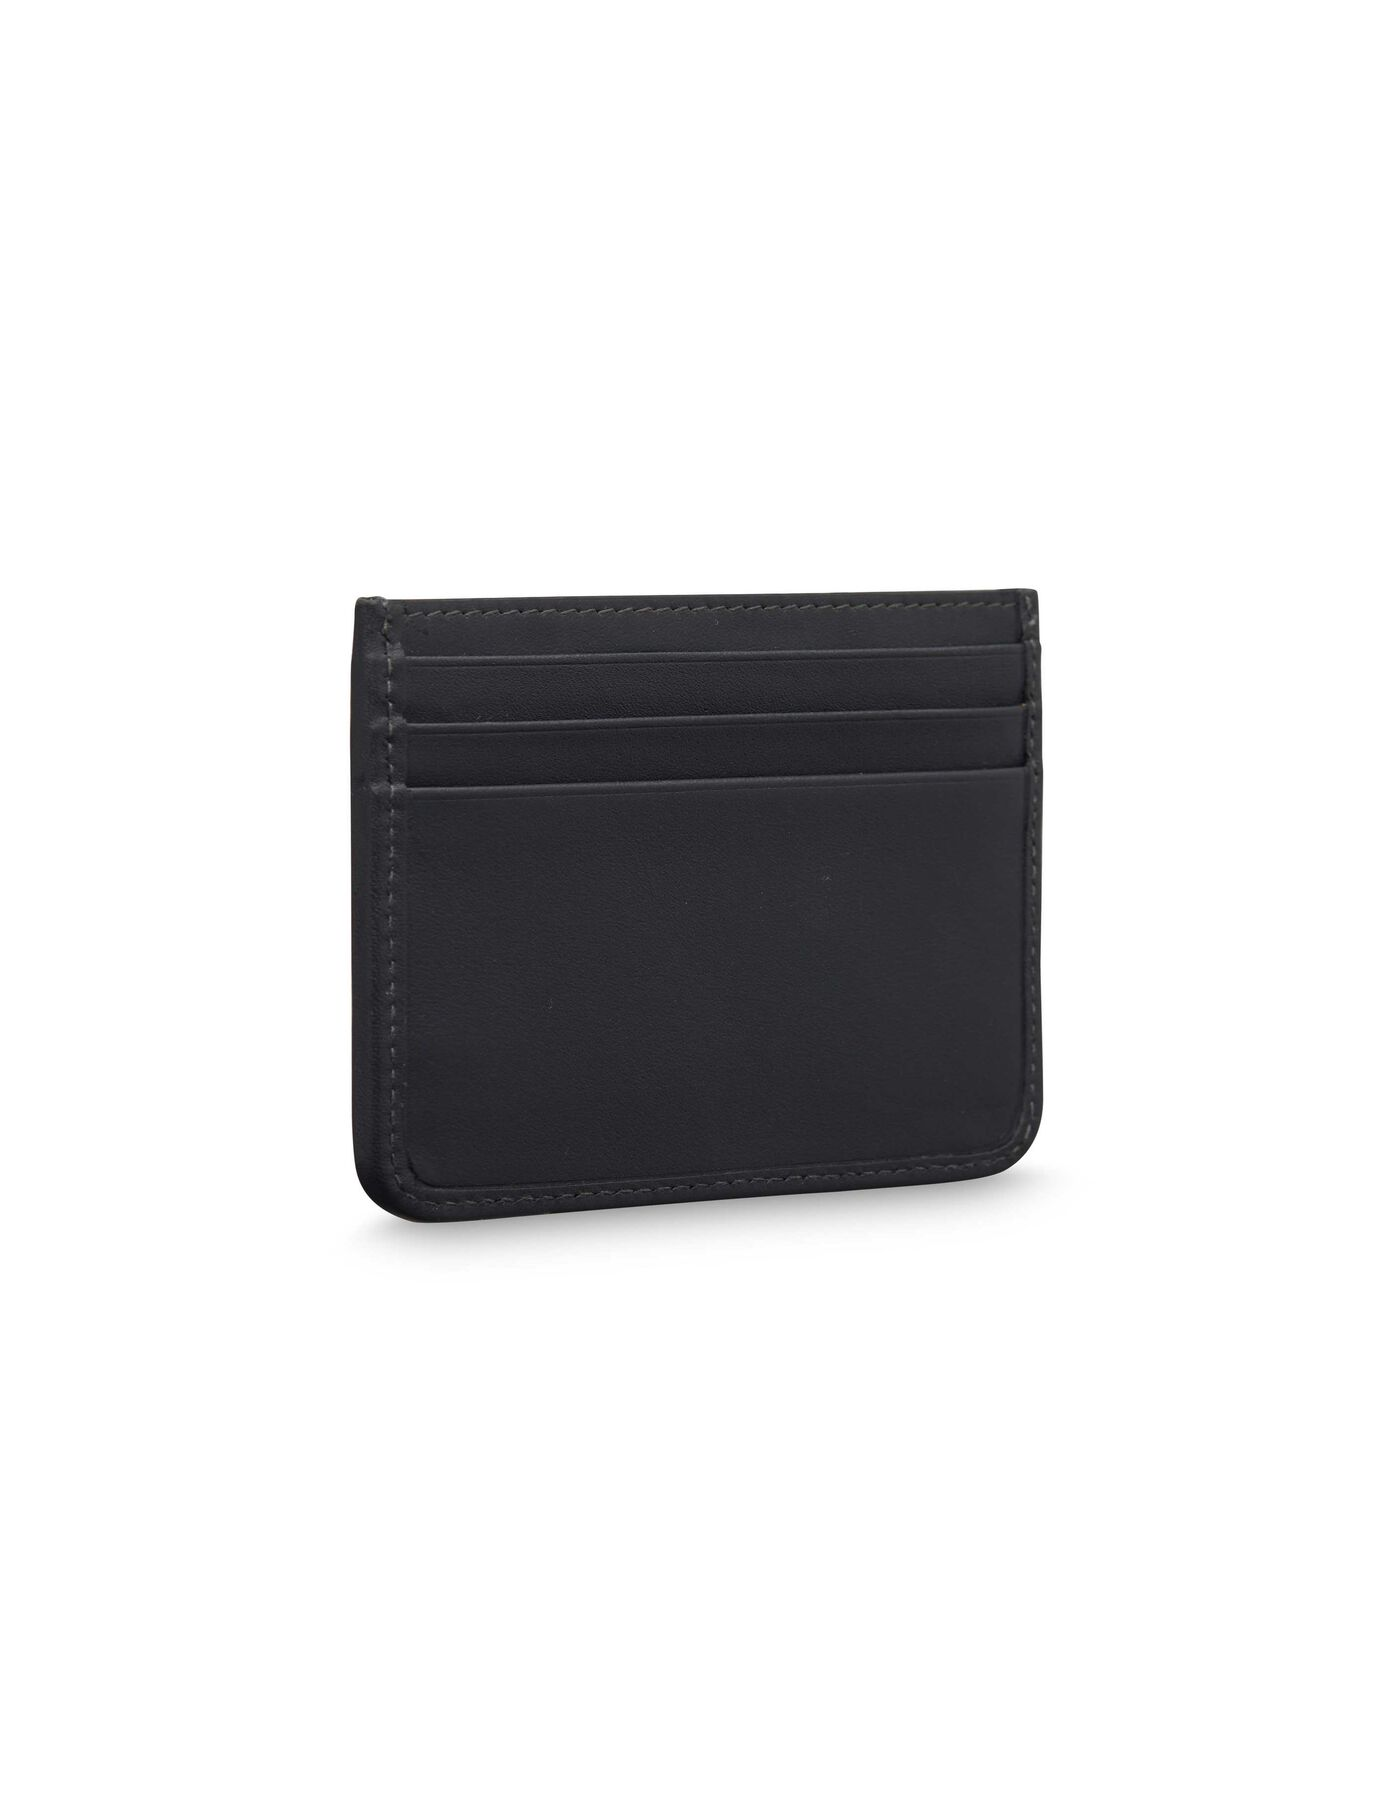 GLEIZES CARD HOLDER in Fall Concrete from Tiger of Sweden